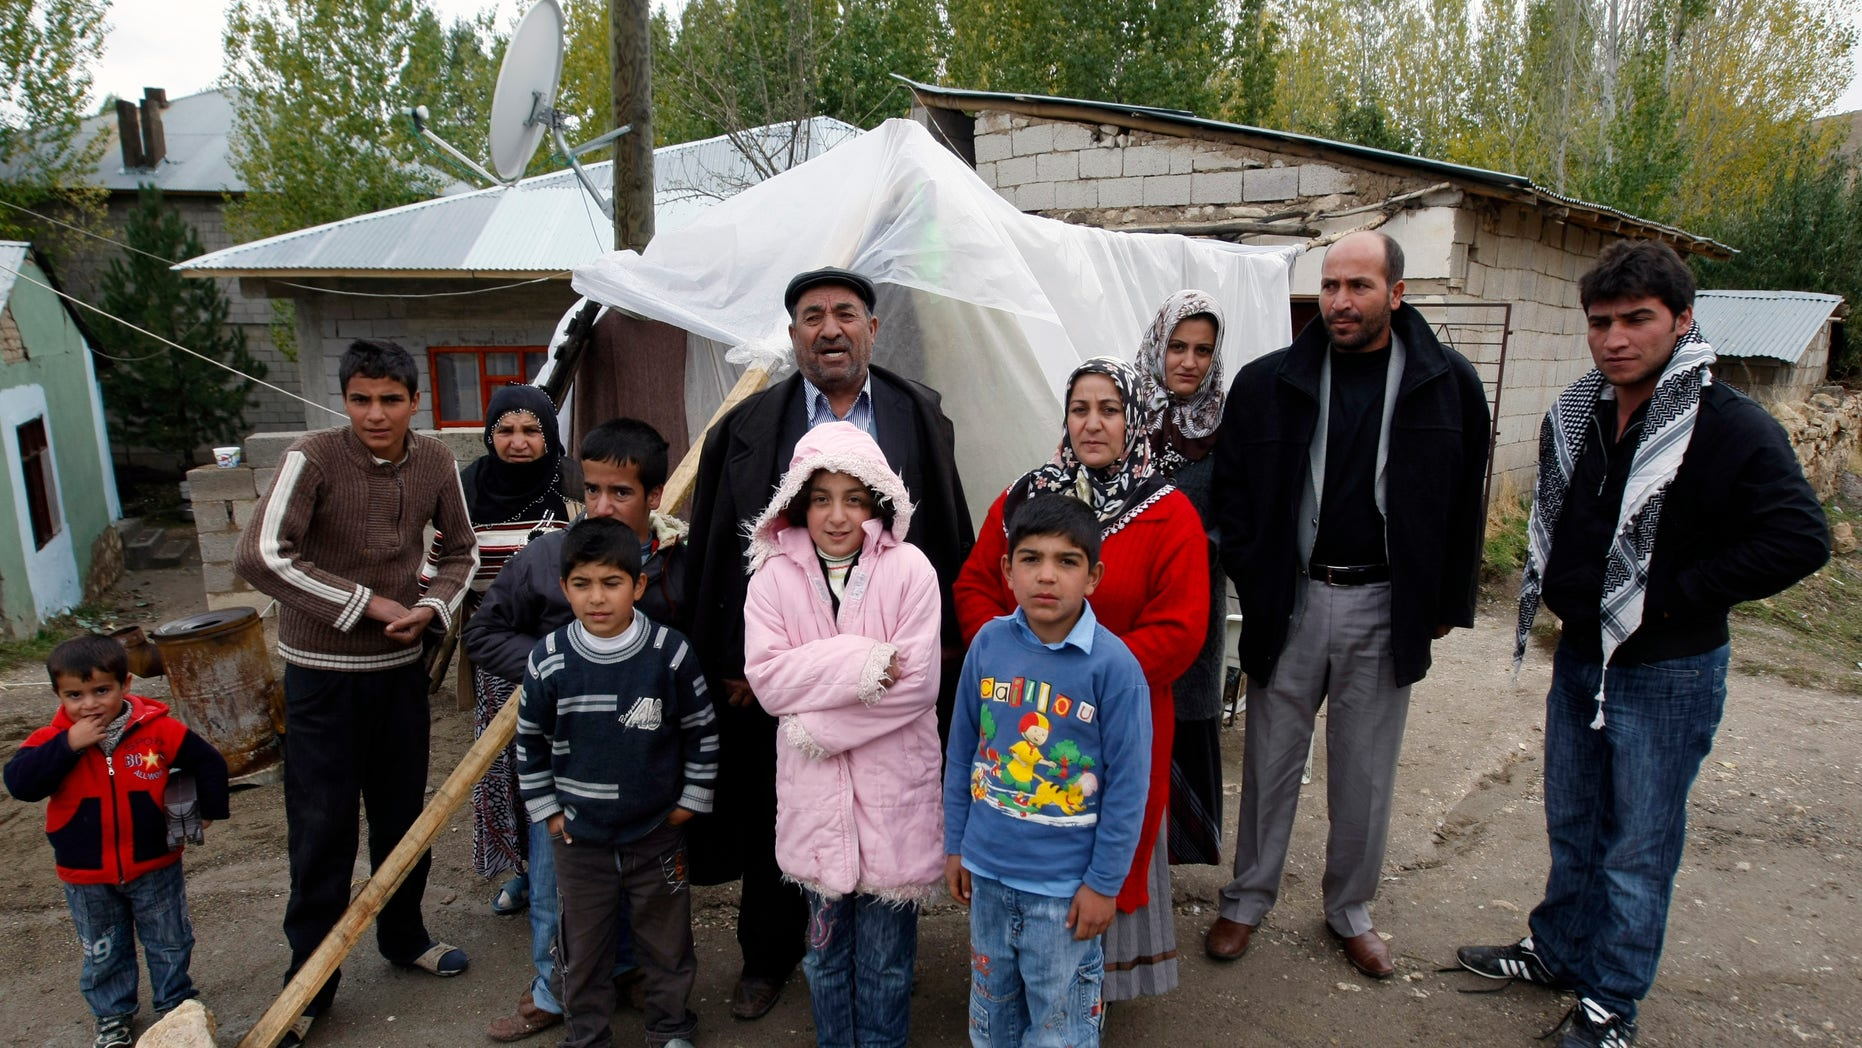 Oct. 27, 2011: Earthquake survivor, Adil Aktas, rear center, 56, and his family members stand outside their makeshift tent where about 10 people spent the night without any heating in a tent city set up in a soccer field in Ercis, Van, Turkey.